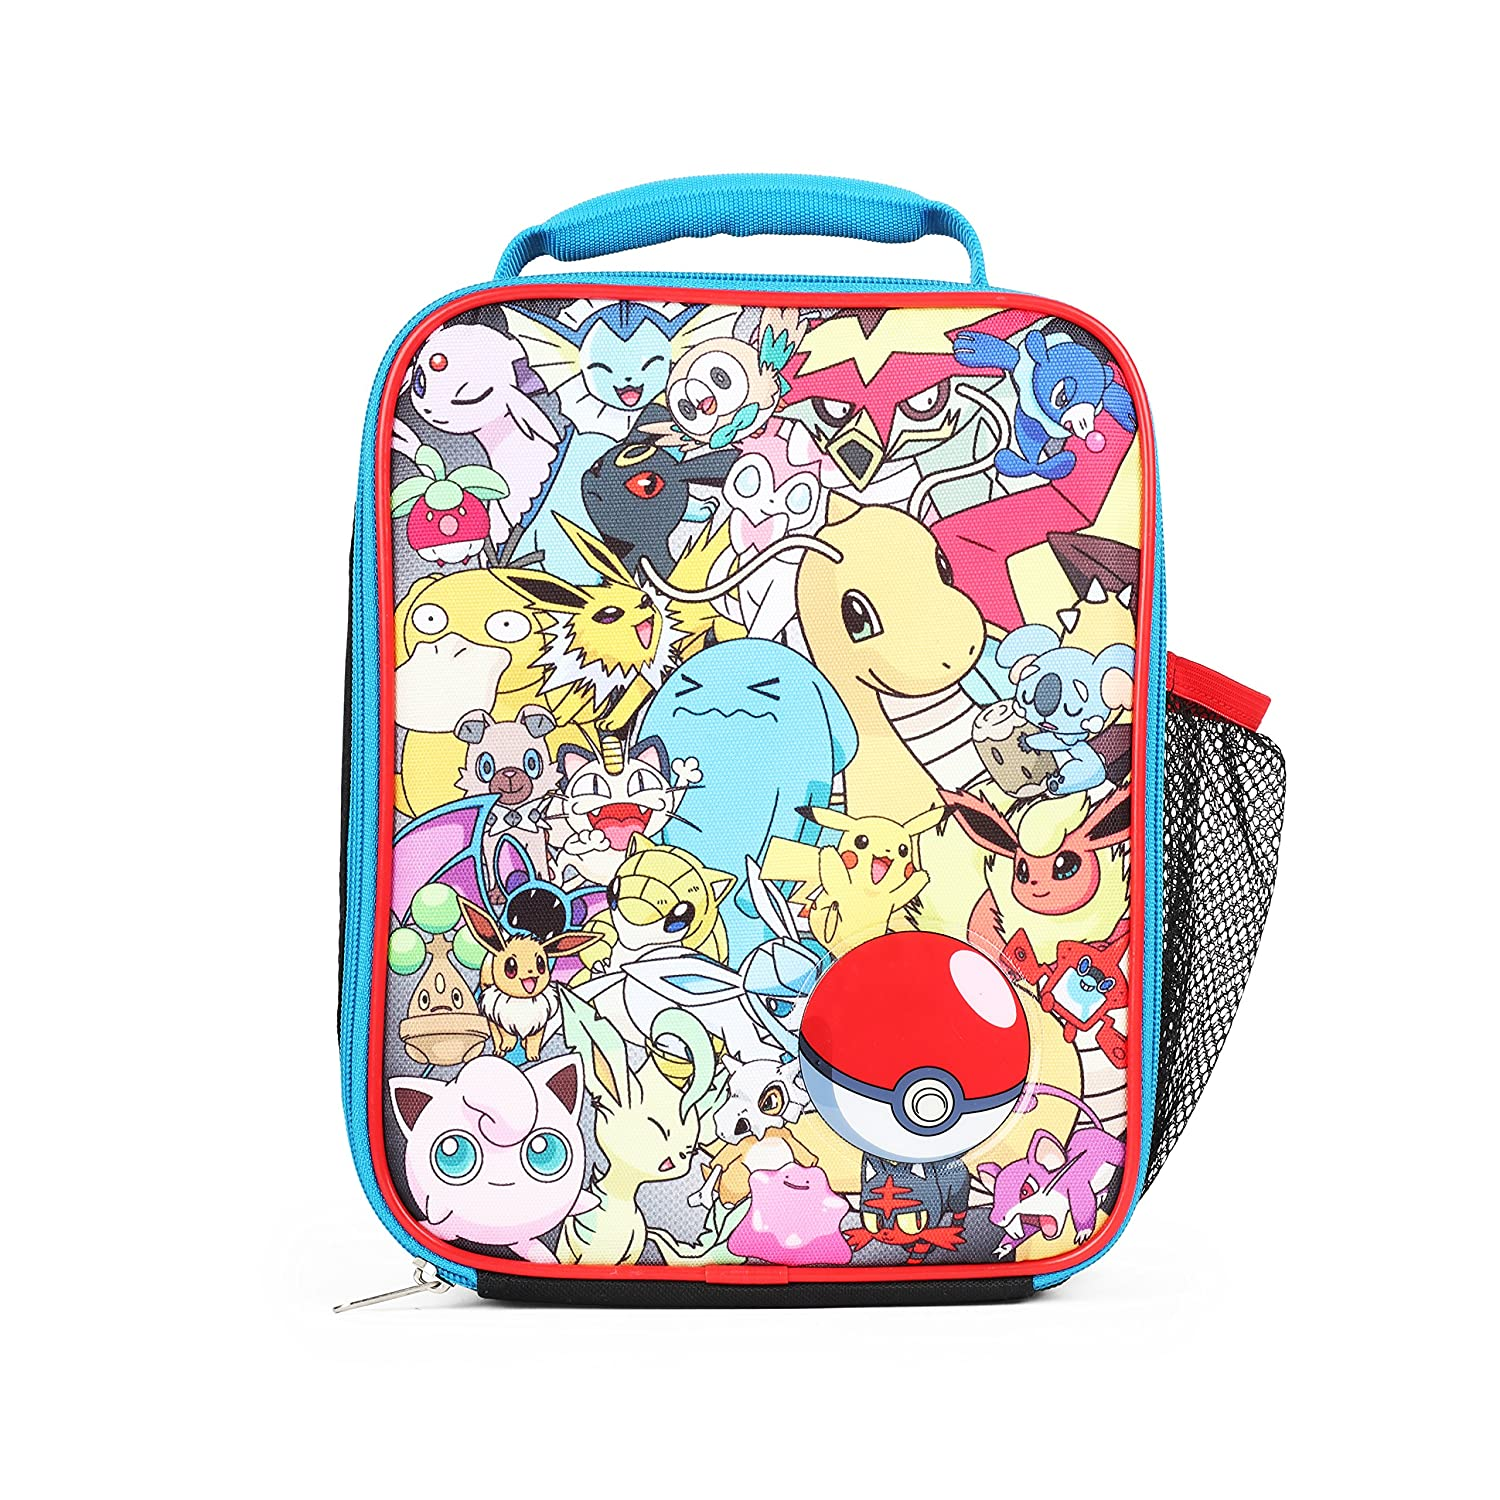 Pokemon All Over Print Multi Characters Insulated Lunch Bag for Kids with Mesh Pocket FAB Starpoint